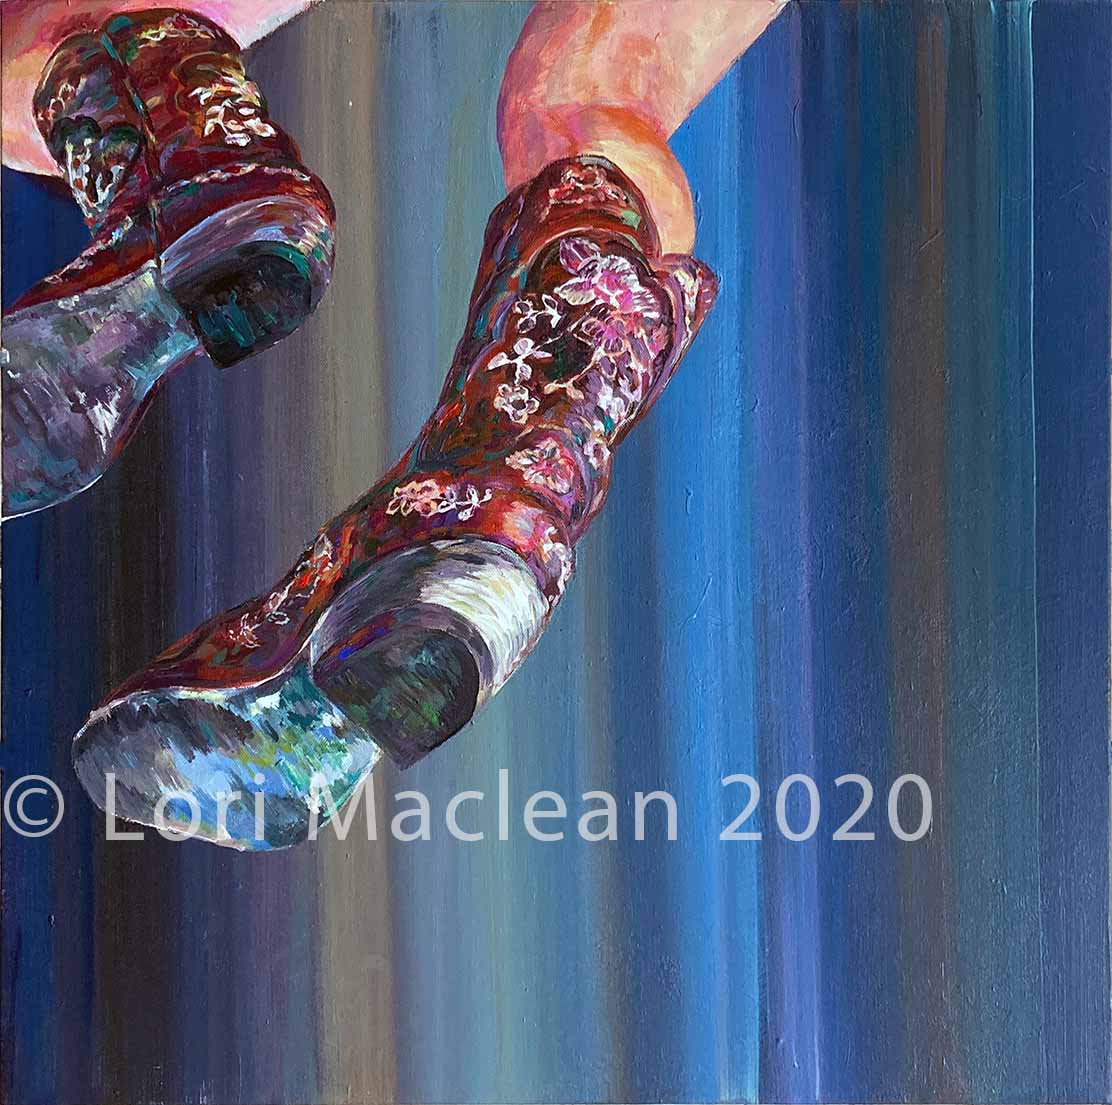 Acrylic on Canvas, fine art painting,realism, figurative, abstract, action, modern, cowboy, boots, detailed